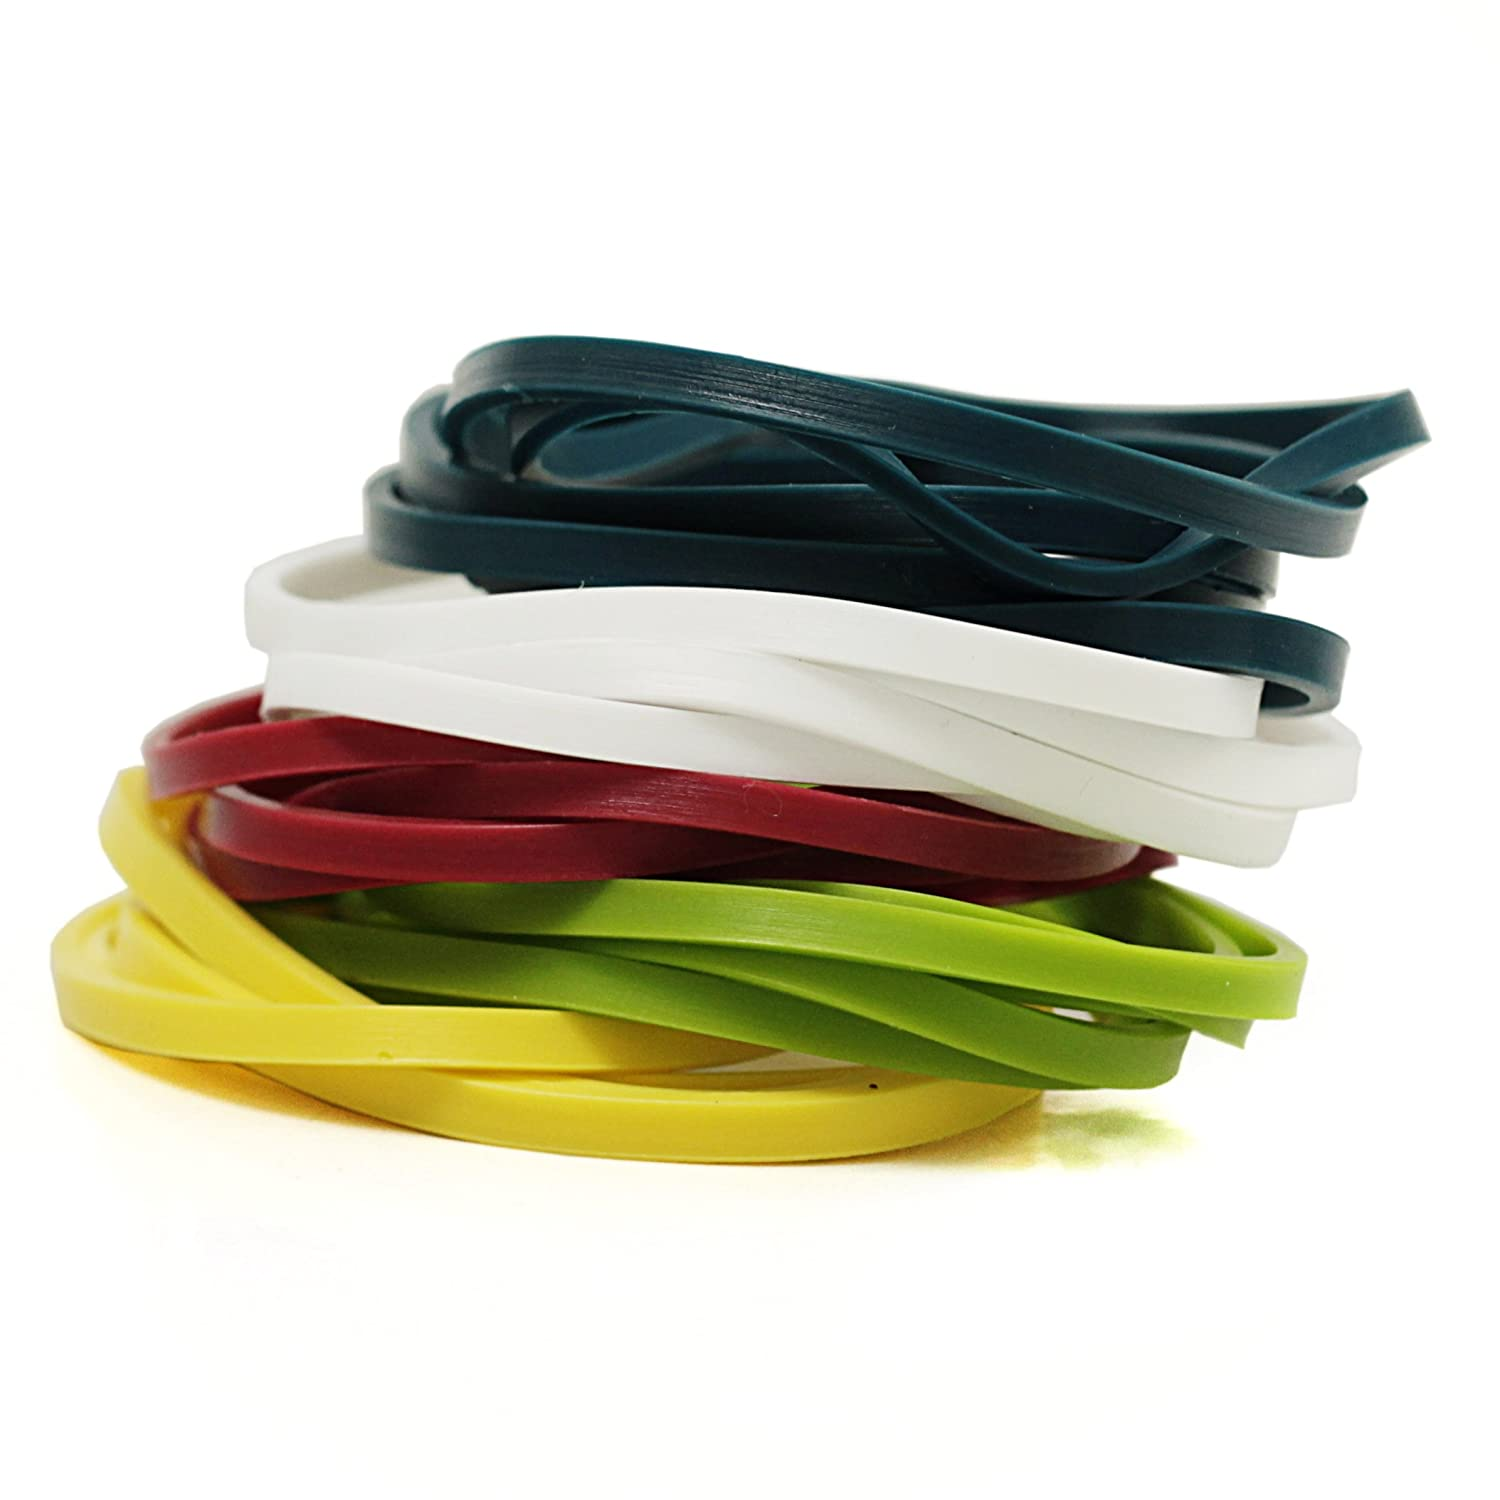 Silicone Cooking Bands - Multi Color - 1 Unit HIC Harold Import Co. FBA_592108-785